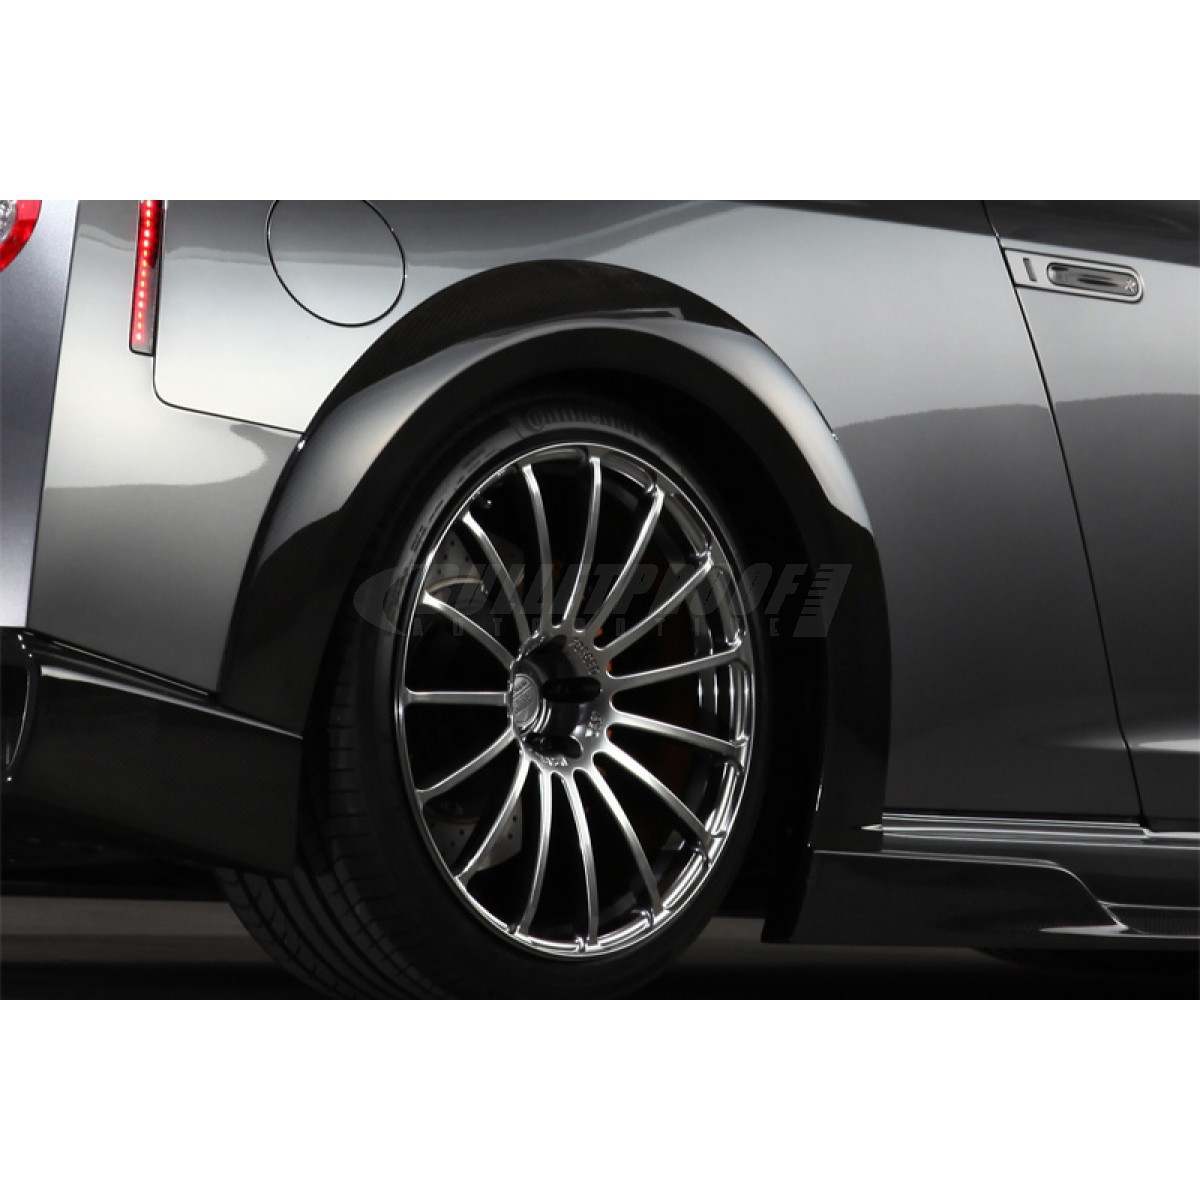 Tommy Kaira 1N001F00 Rear Fender Arch Extension, Wet Carbon Fiber - Nissan GT-R 09+ R35